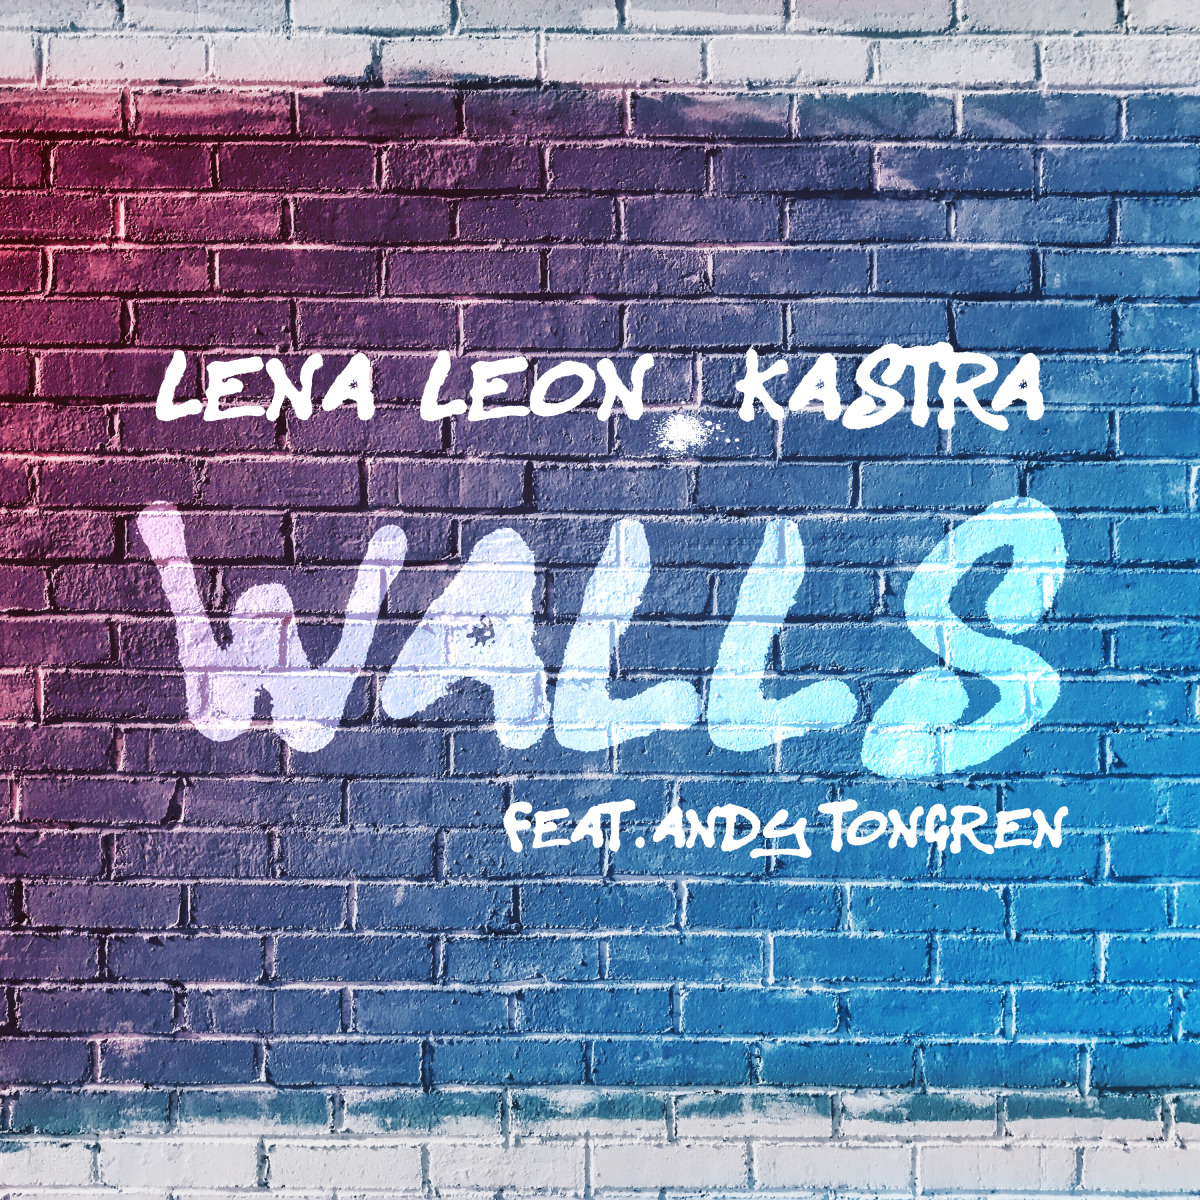 Kastra & Lena Leon - Walls (feat. Andy Tongren) - ALBUM ART)